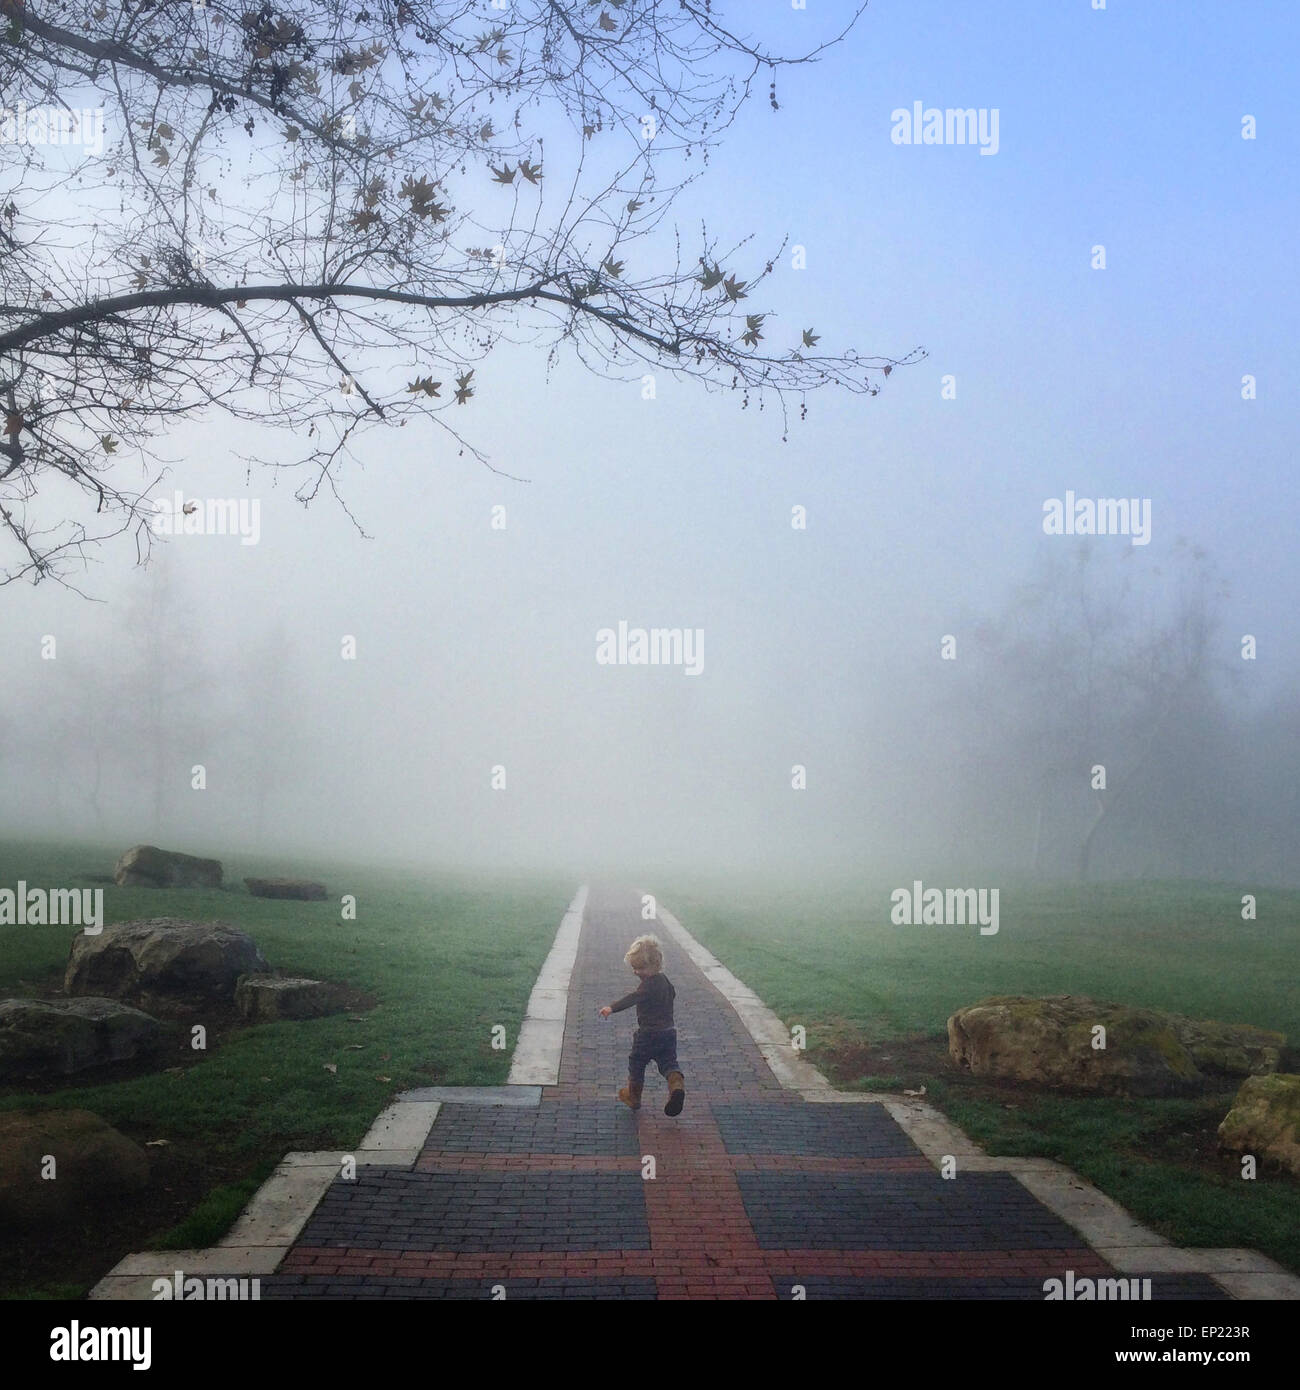 Boy running down path laughing - Stock Image